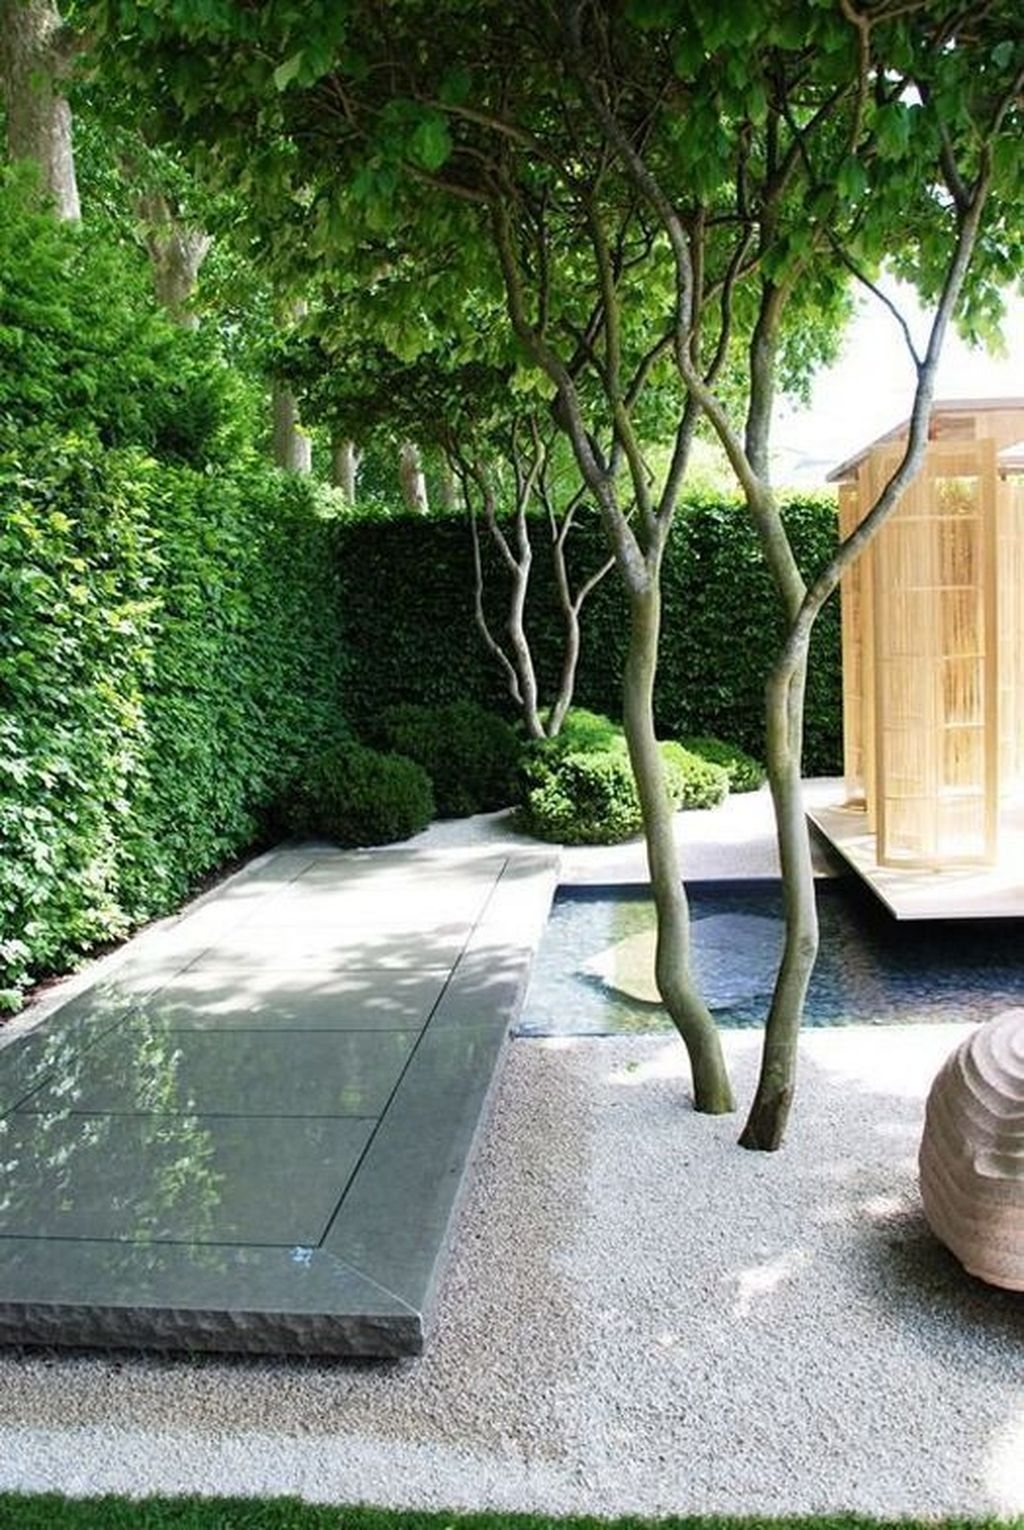 Amazing Garden Design Ideas For Small Space To Try 02